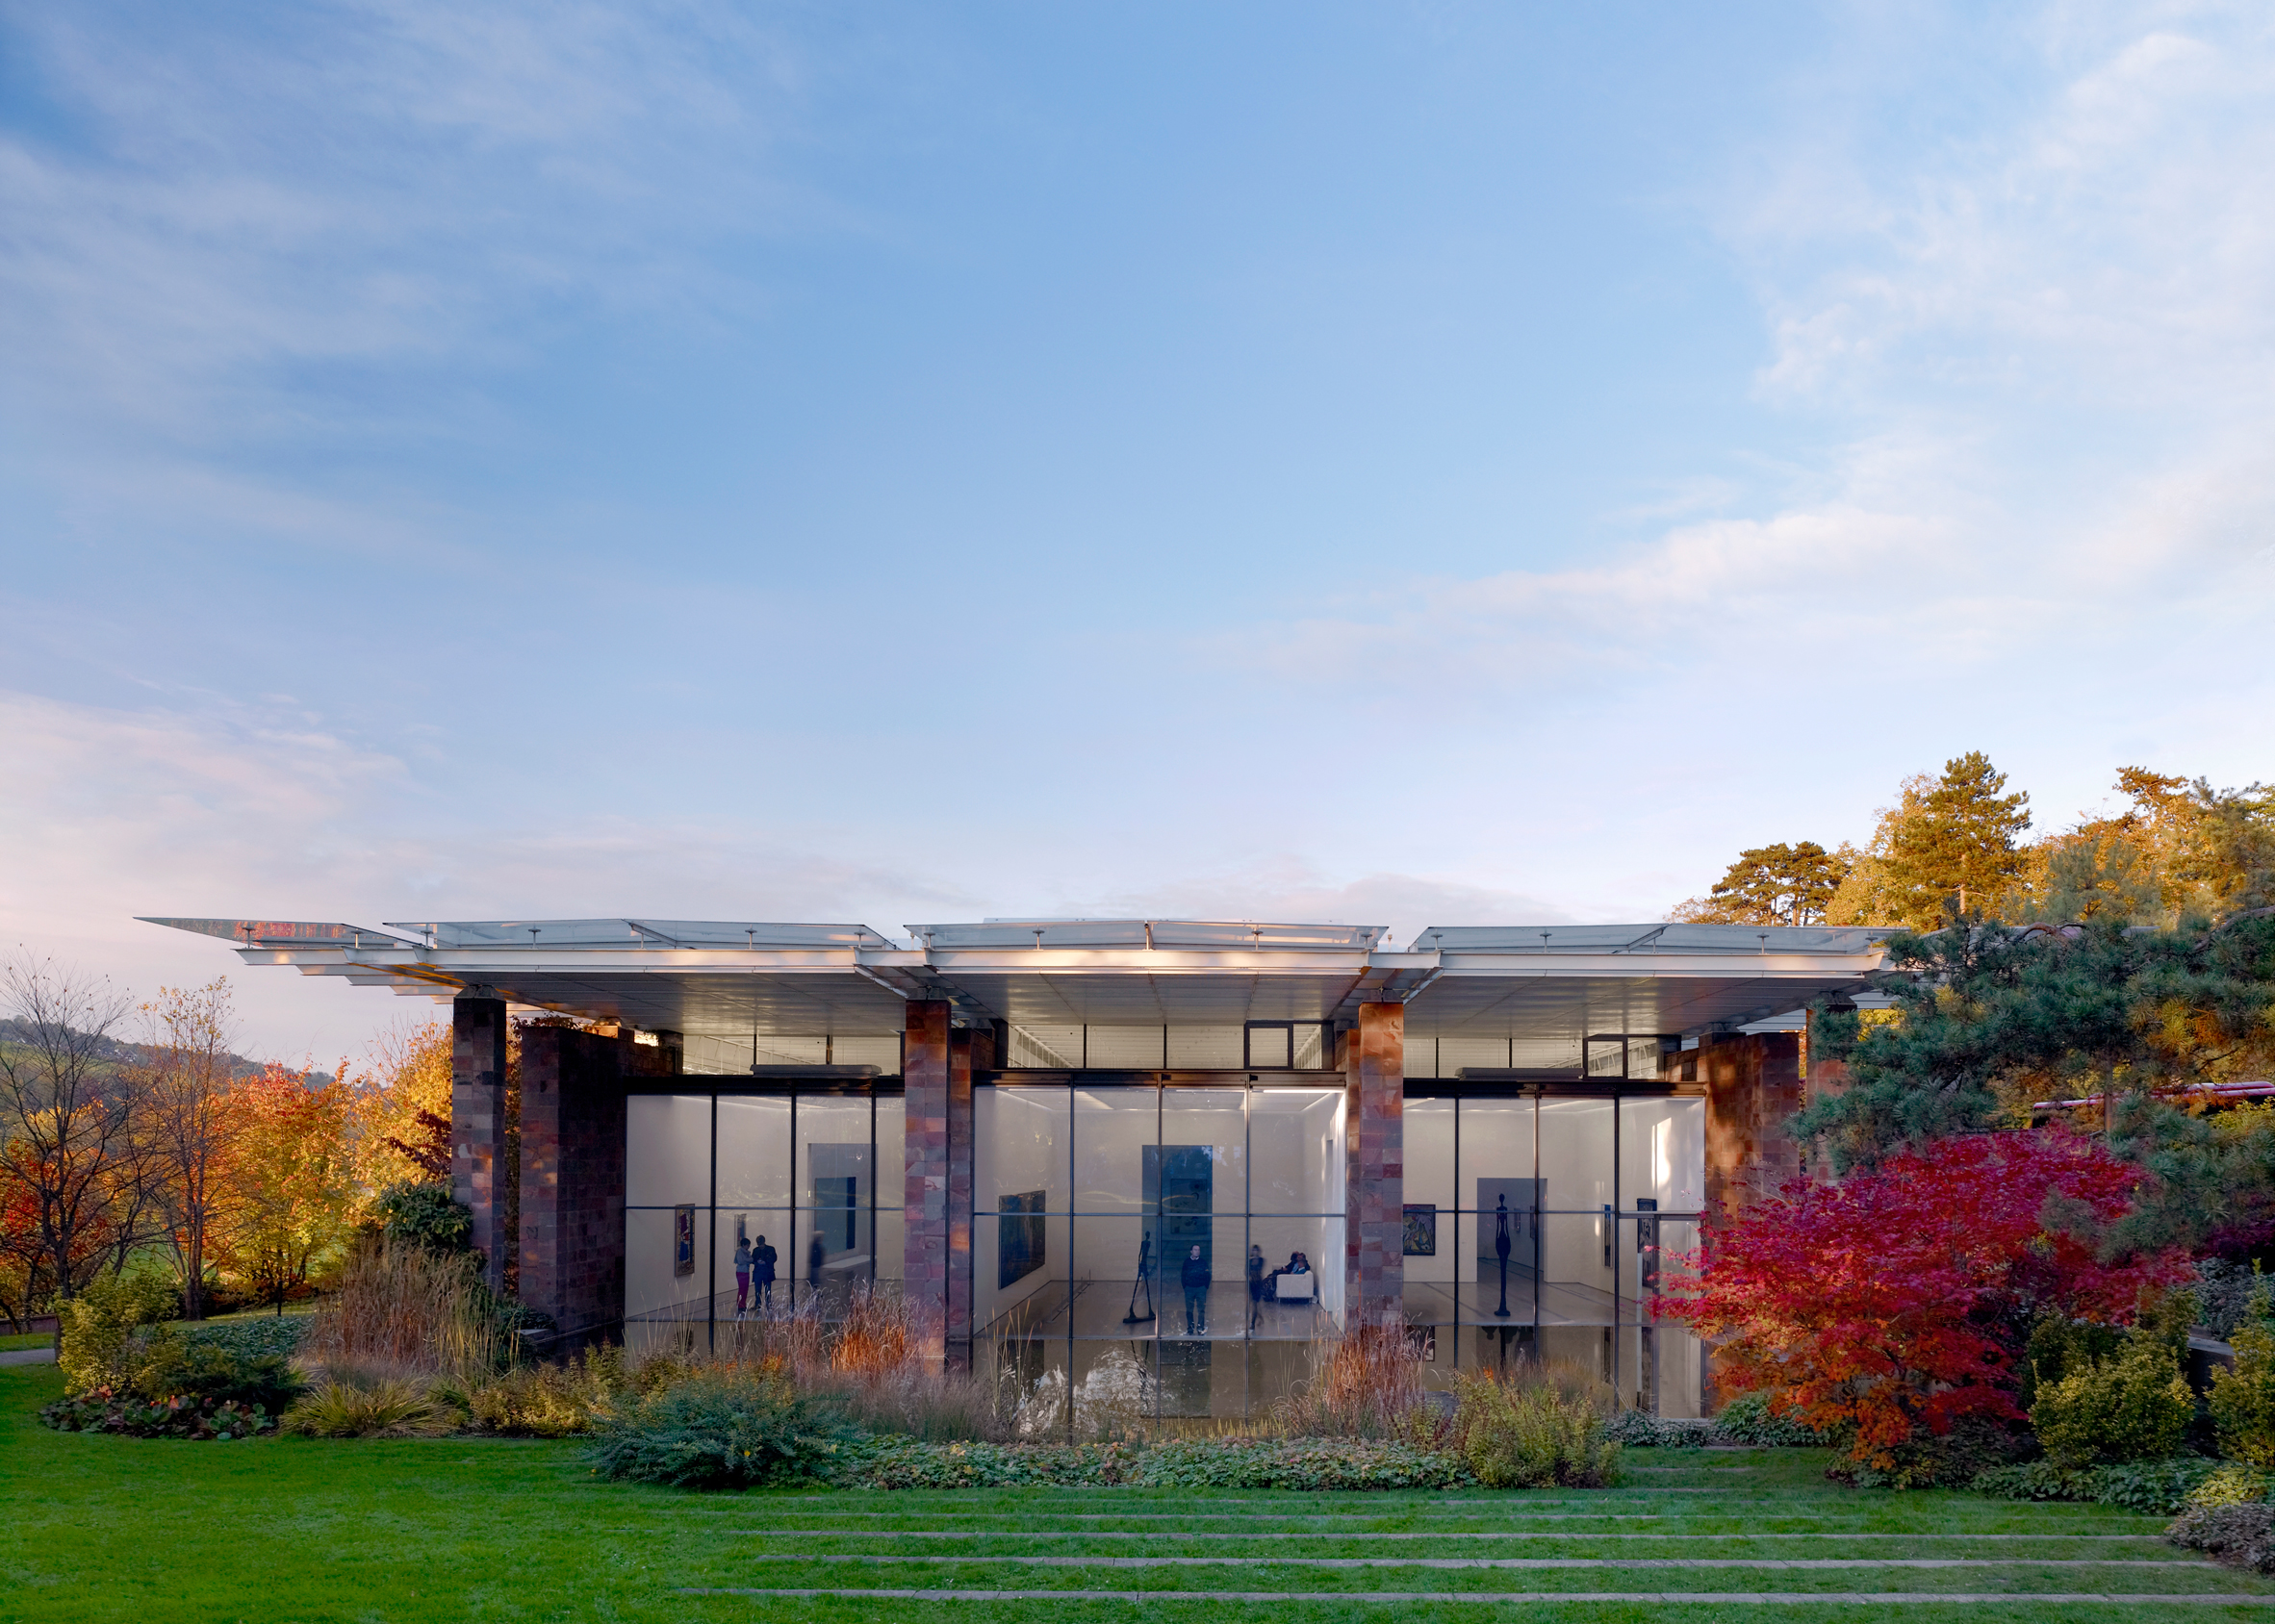 Peter Zumthor to extend the Renzo Piano-designed Fondation Beyeler art museum